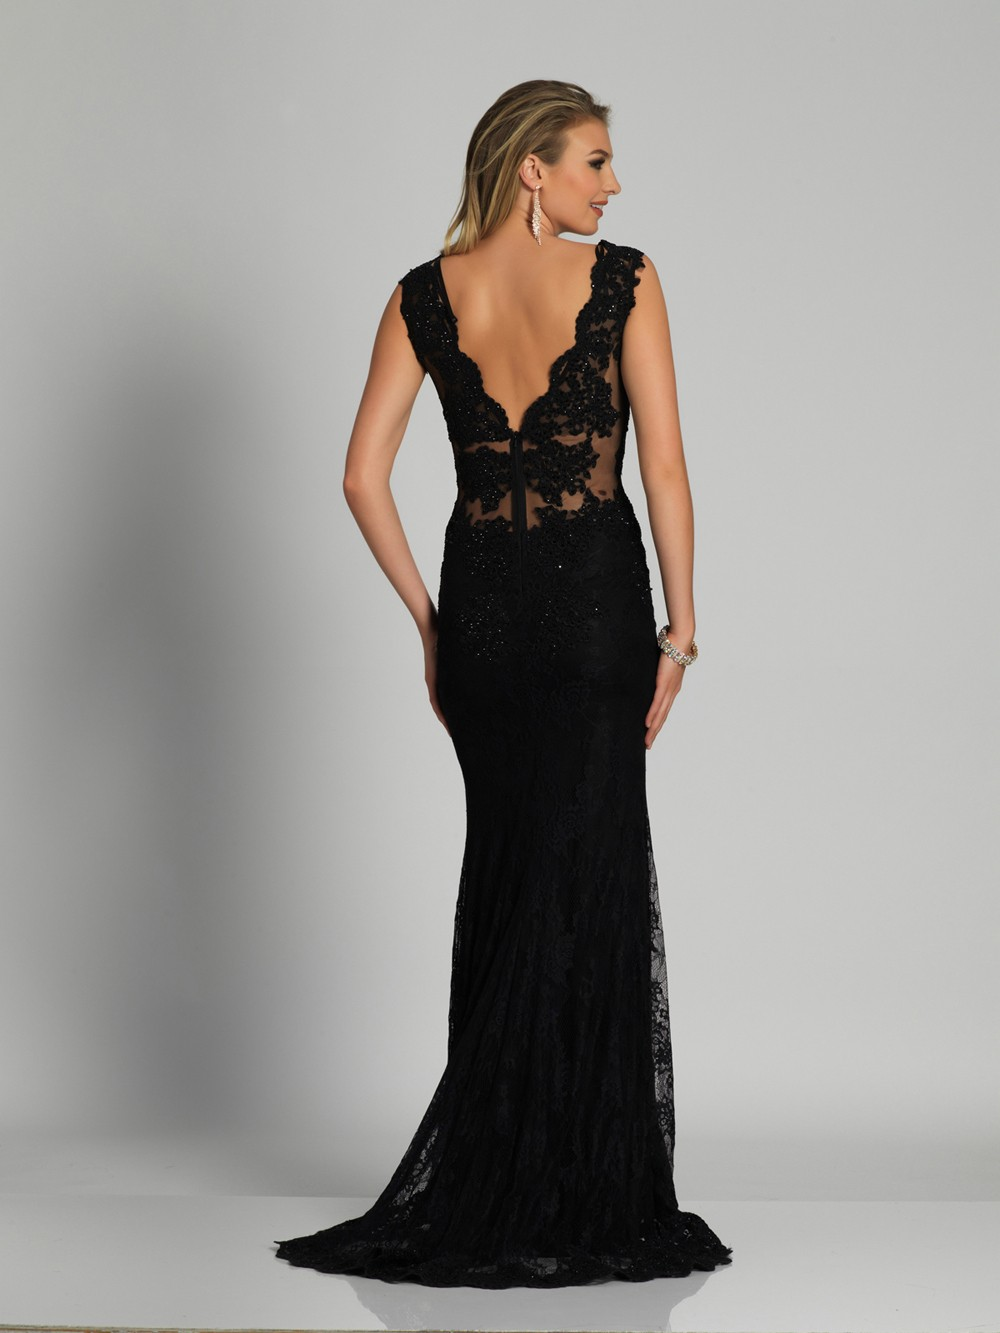 38f7ca8c0a Long Elegant Prom Dress By Dave And Johnny - Gomes Weine AG